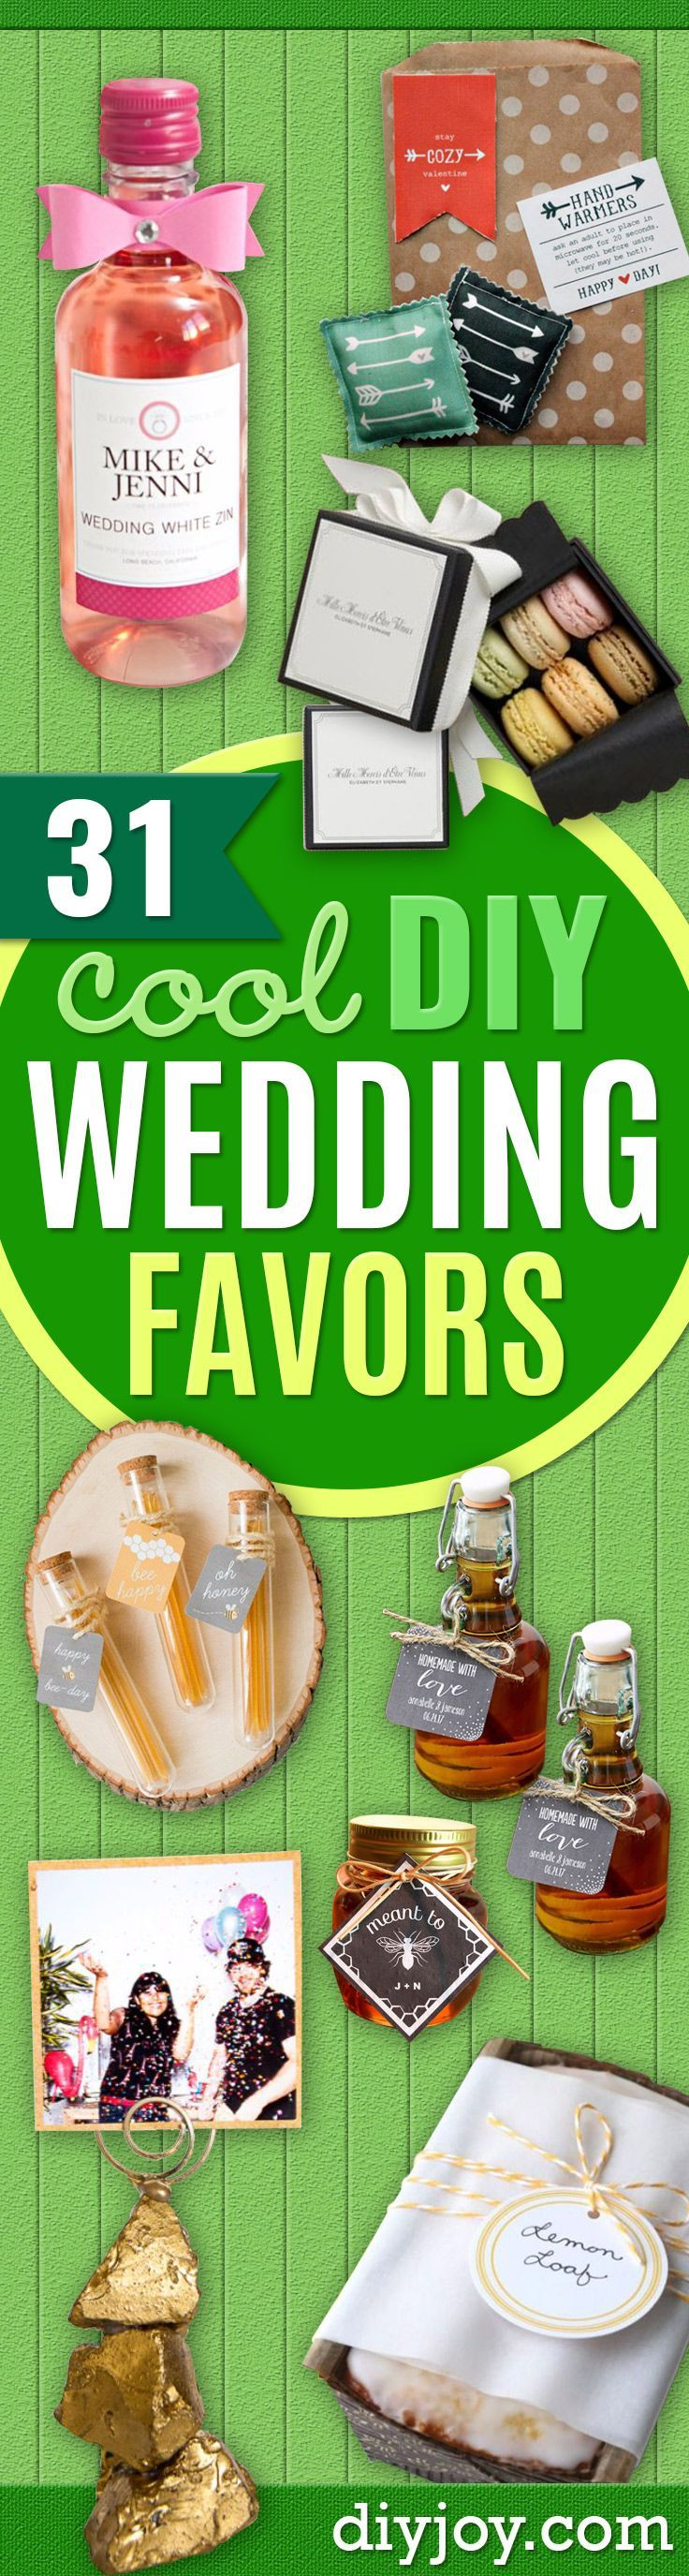 70 best diy wedding ideas images on pinterest wedding decor 31 brilliantly creative wedding favors you can make for your big day solutioingenieria Image collections